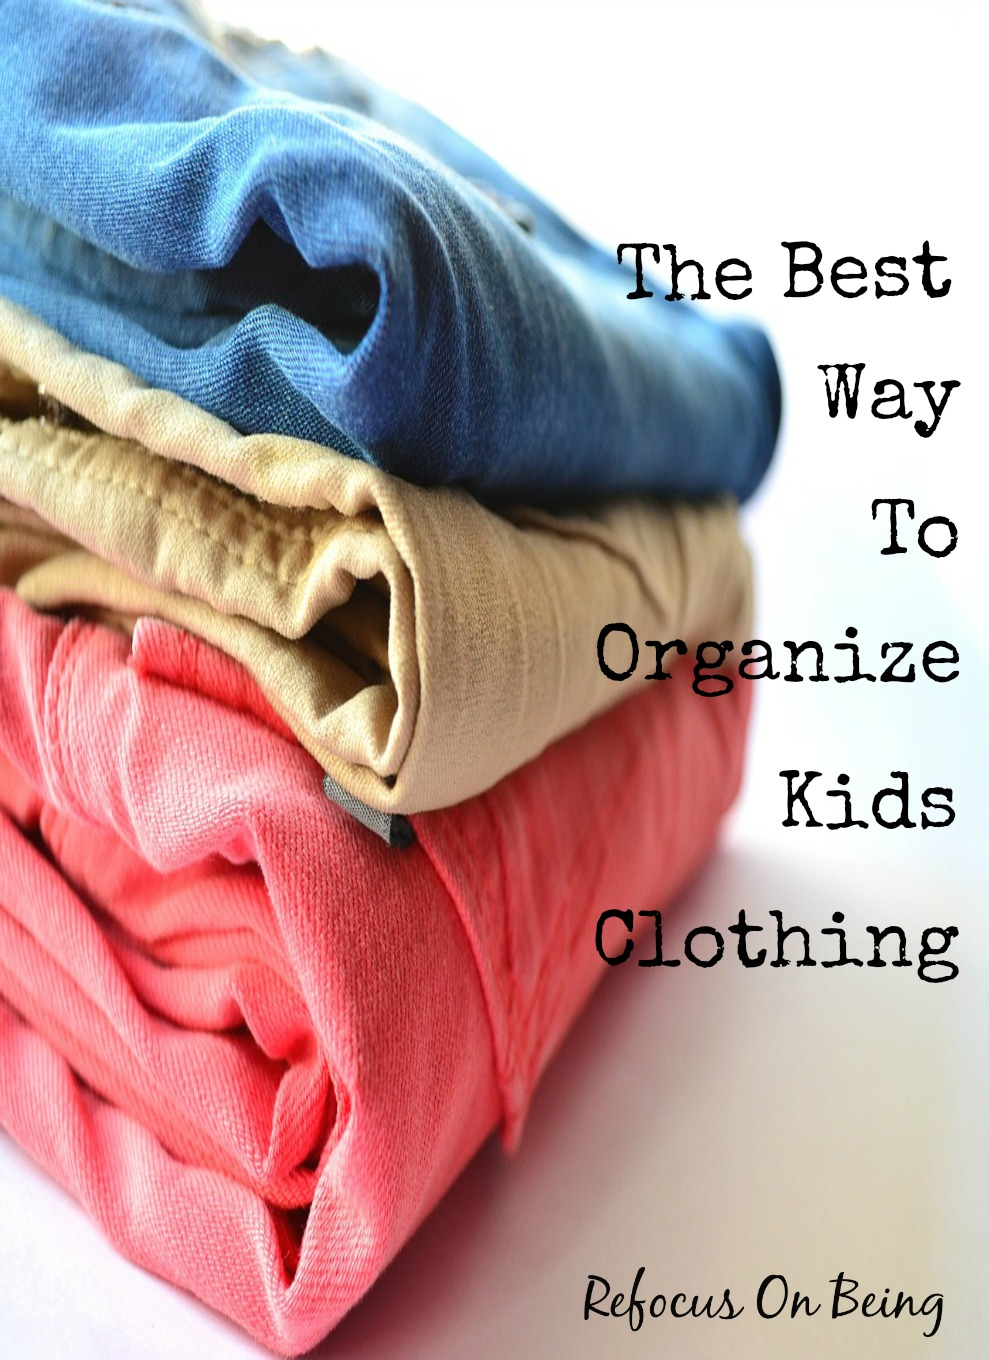 The Best Way To Organize Kids Clothing Refocus On Being